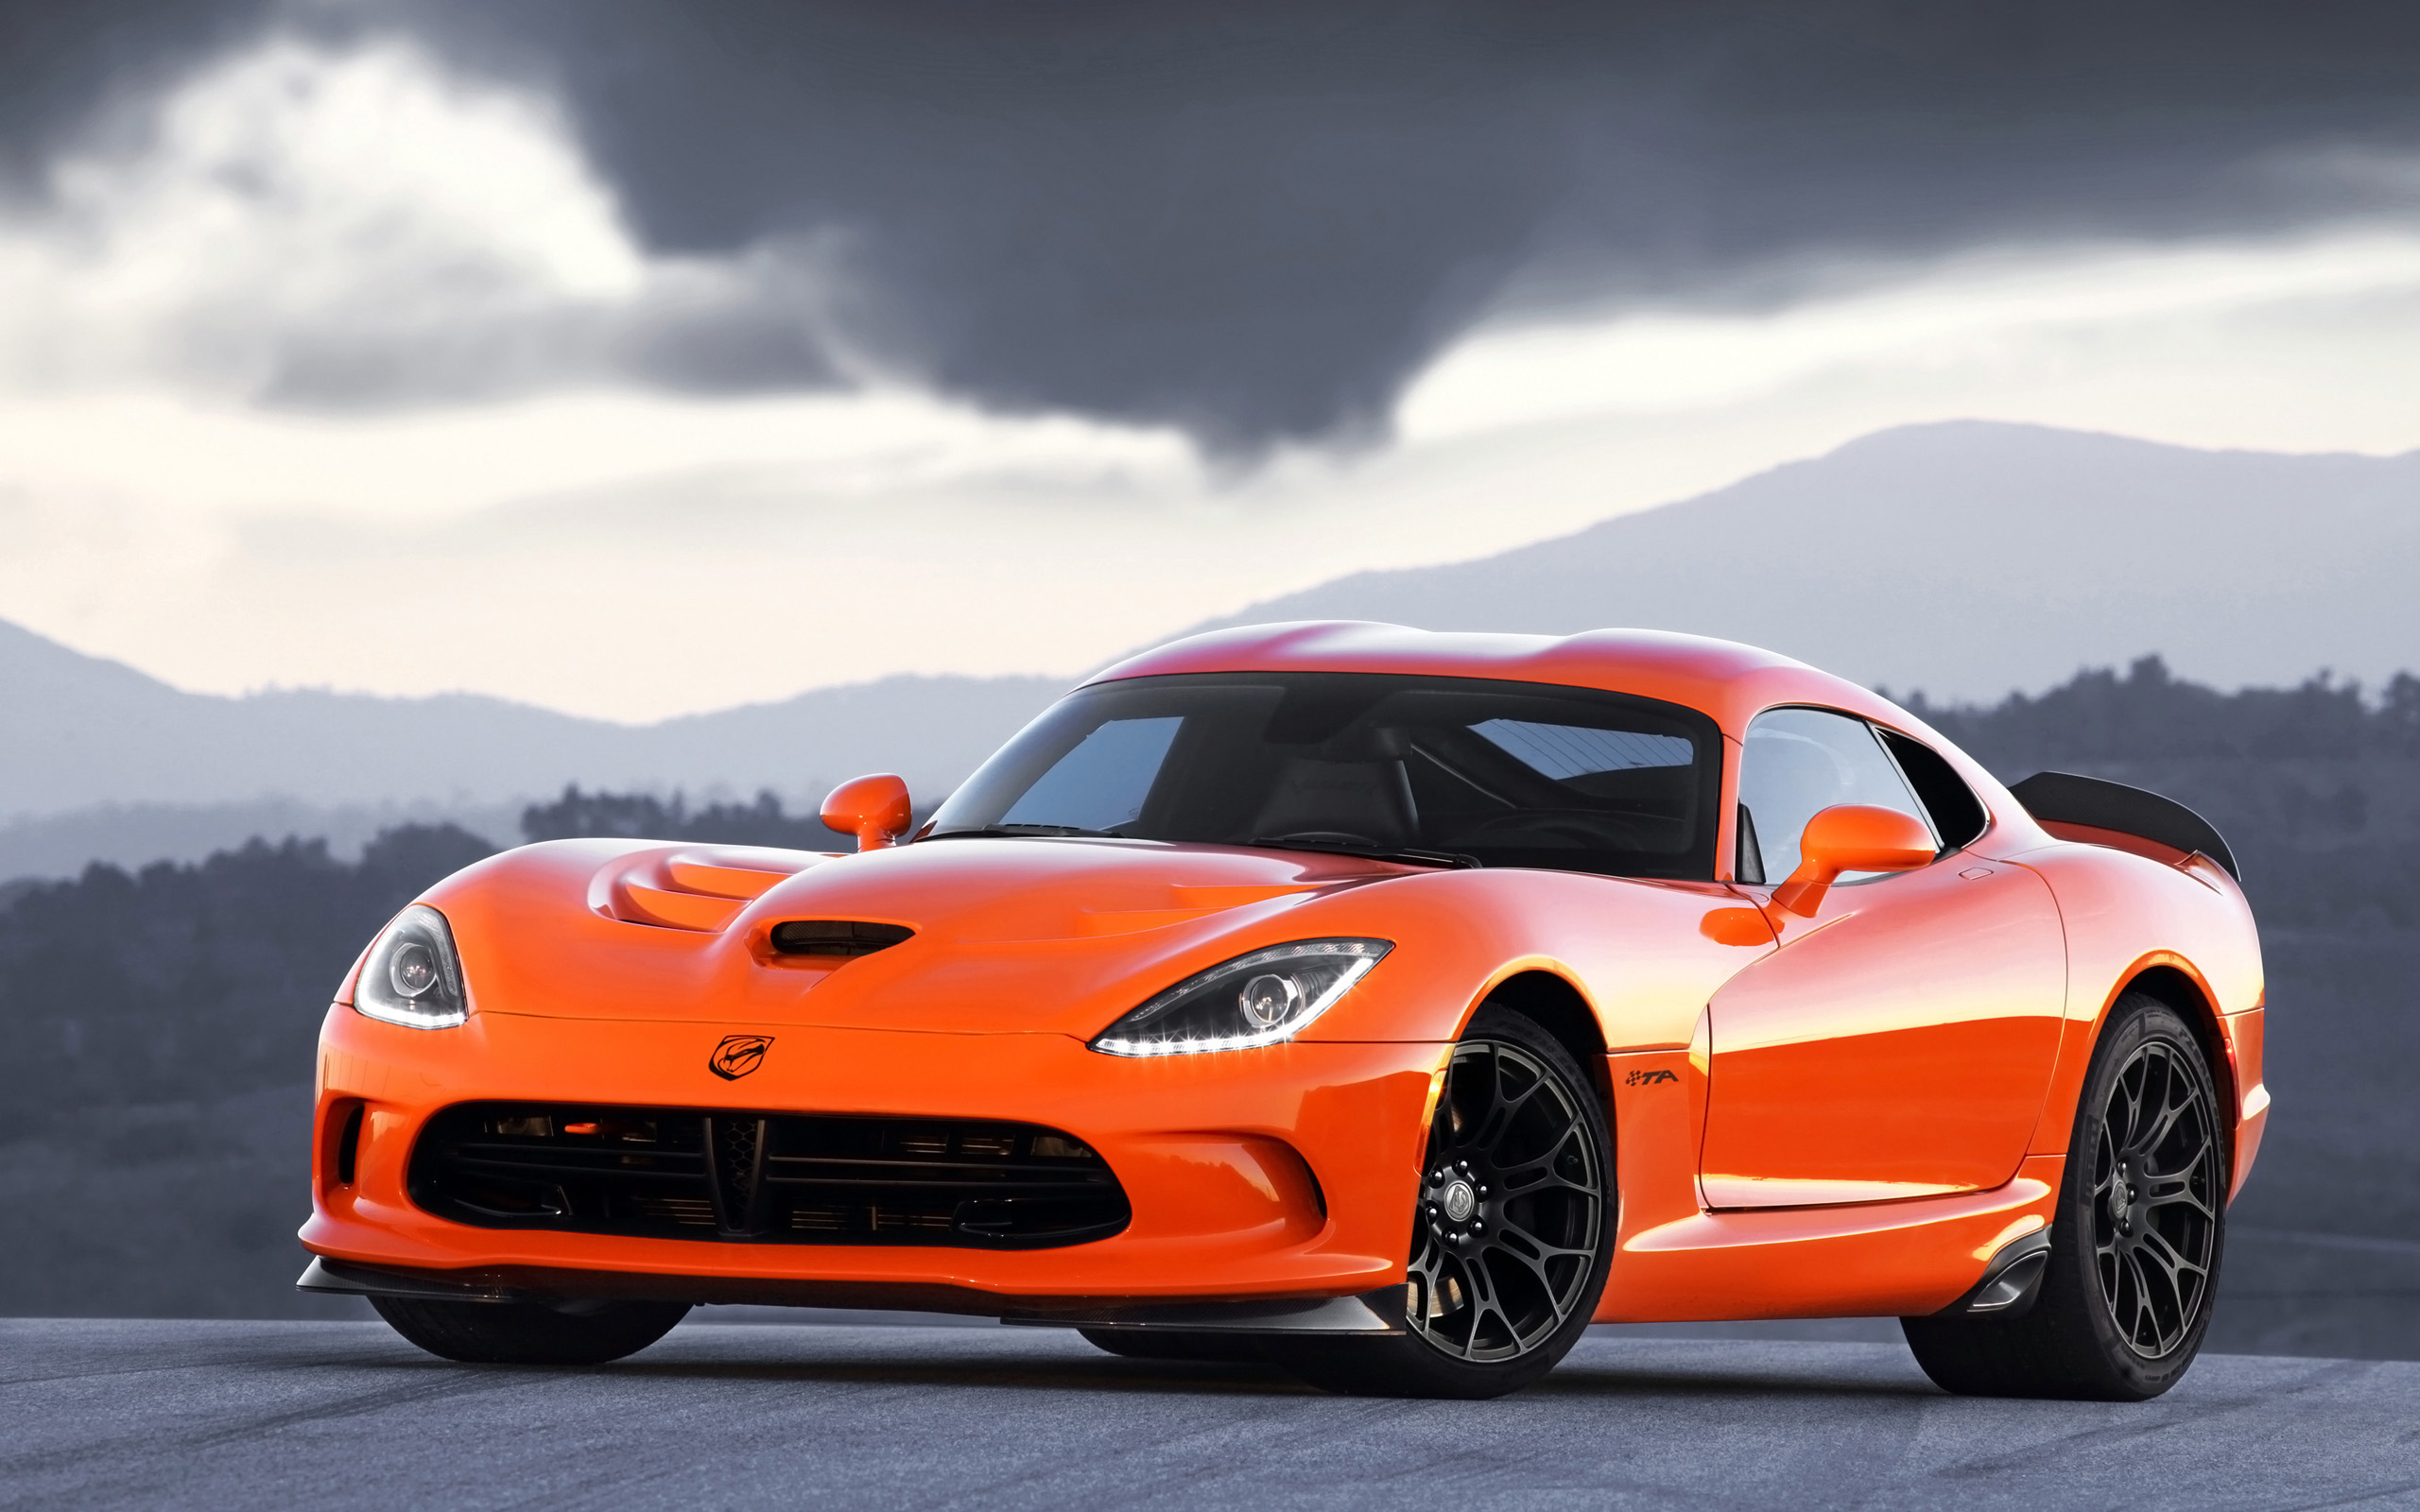 2014 Dodge Srt Viper Ta Wallpaper Hd Car Wallpapers Id 3321